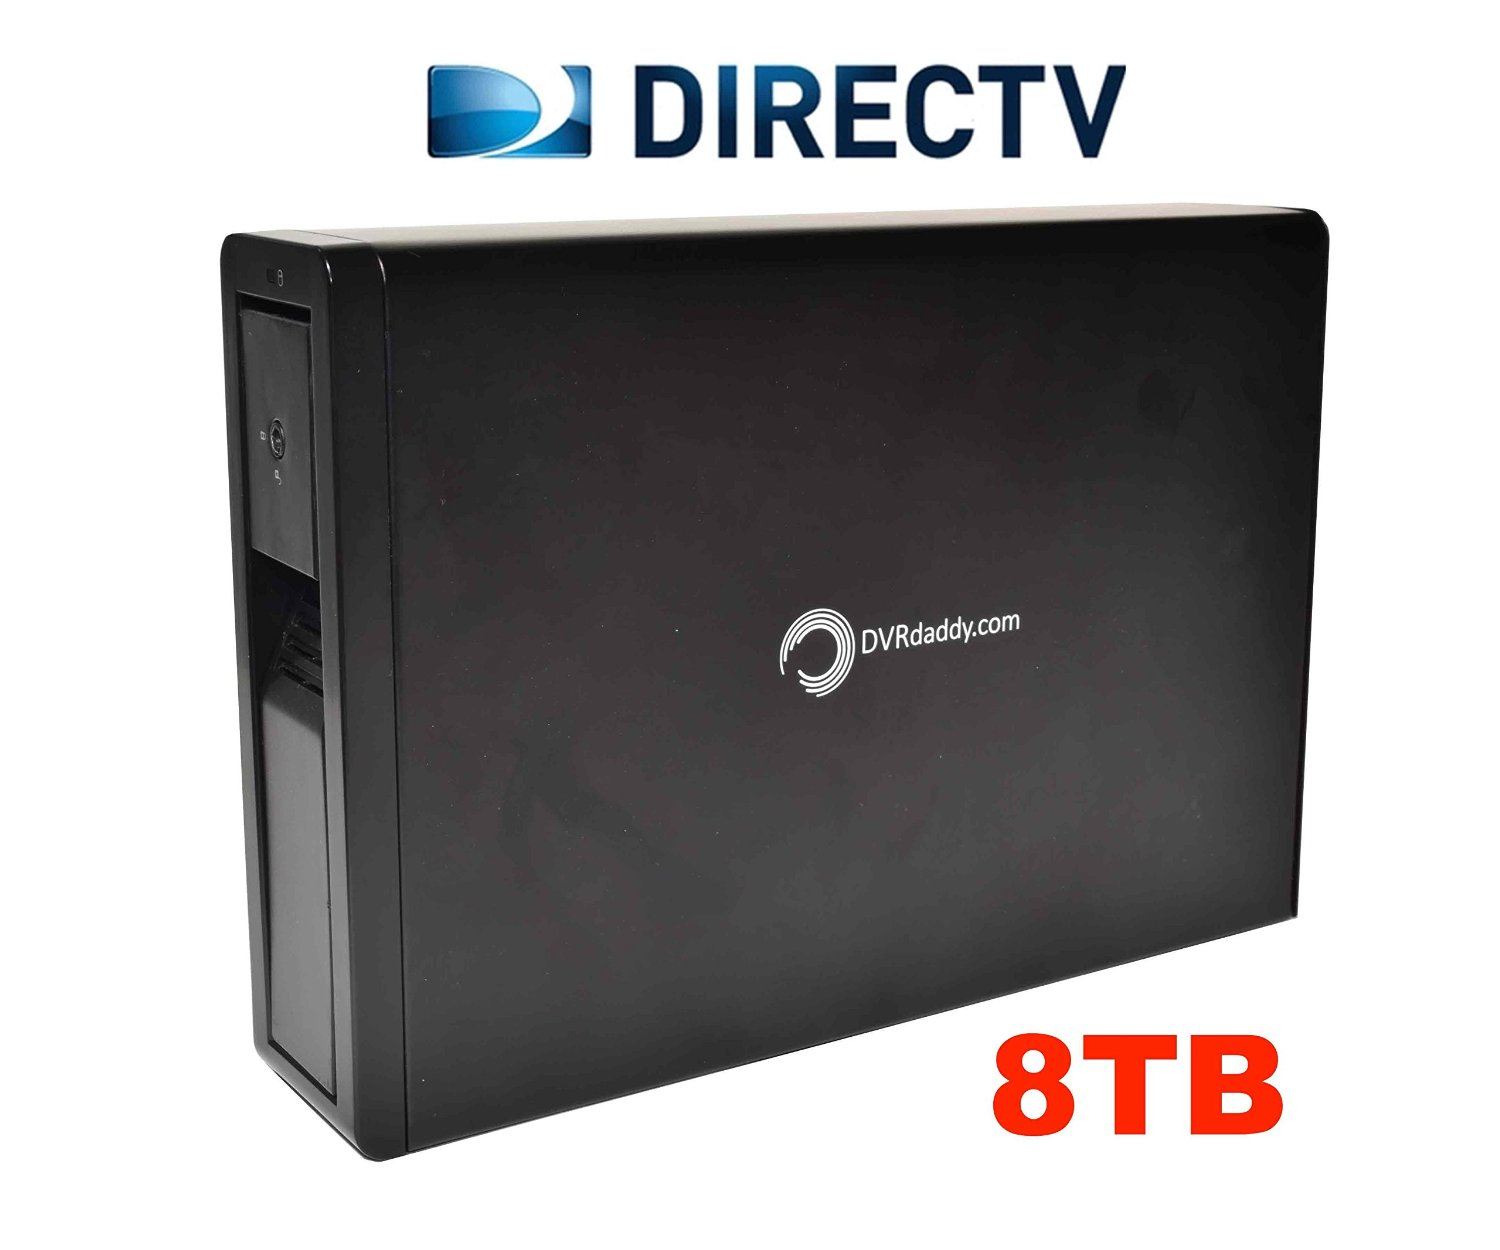 8TB DVRdaddy External DVR Hard Drive Expander For DirecTV HR34, HR44, and HR54 Genie DVR. +6,000 Hours Recording Capacity!